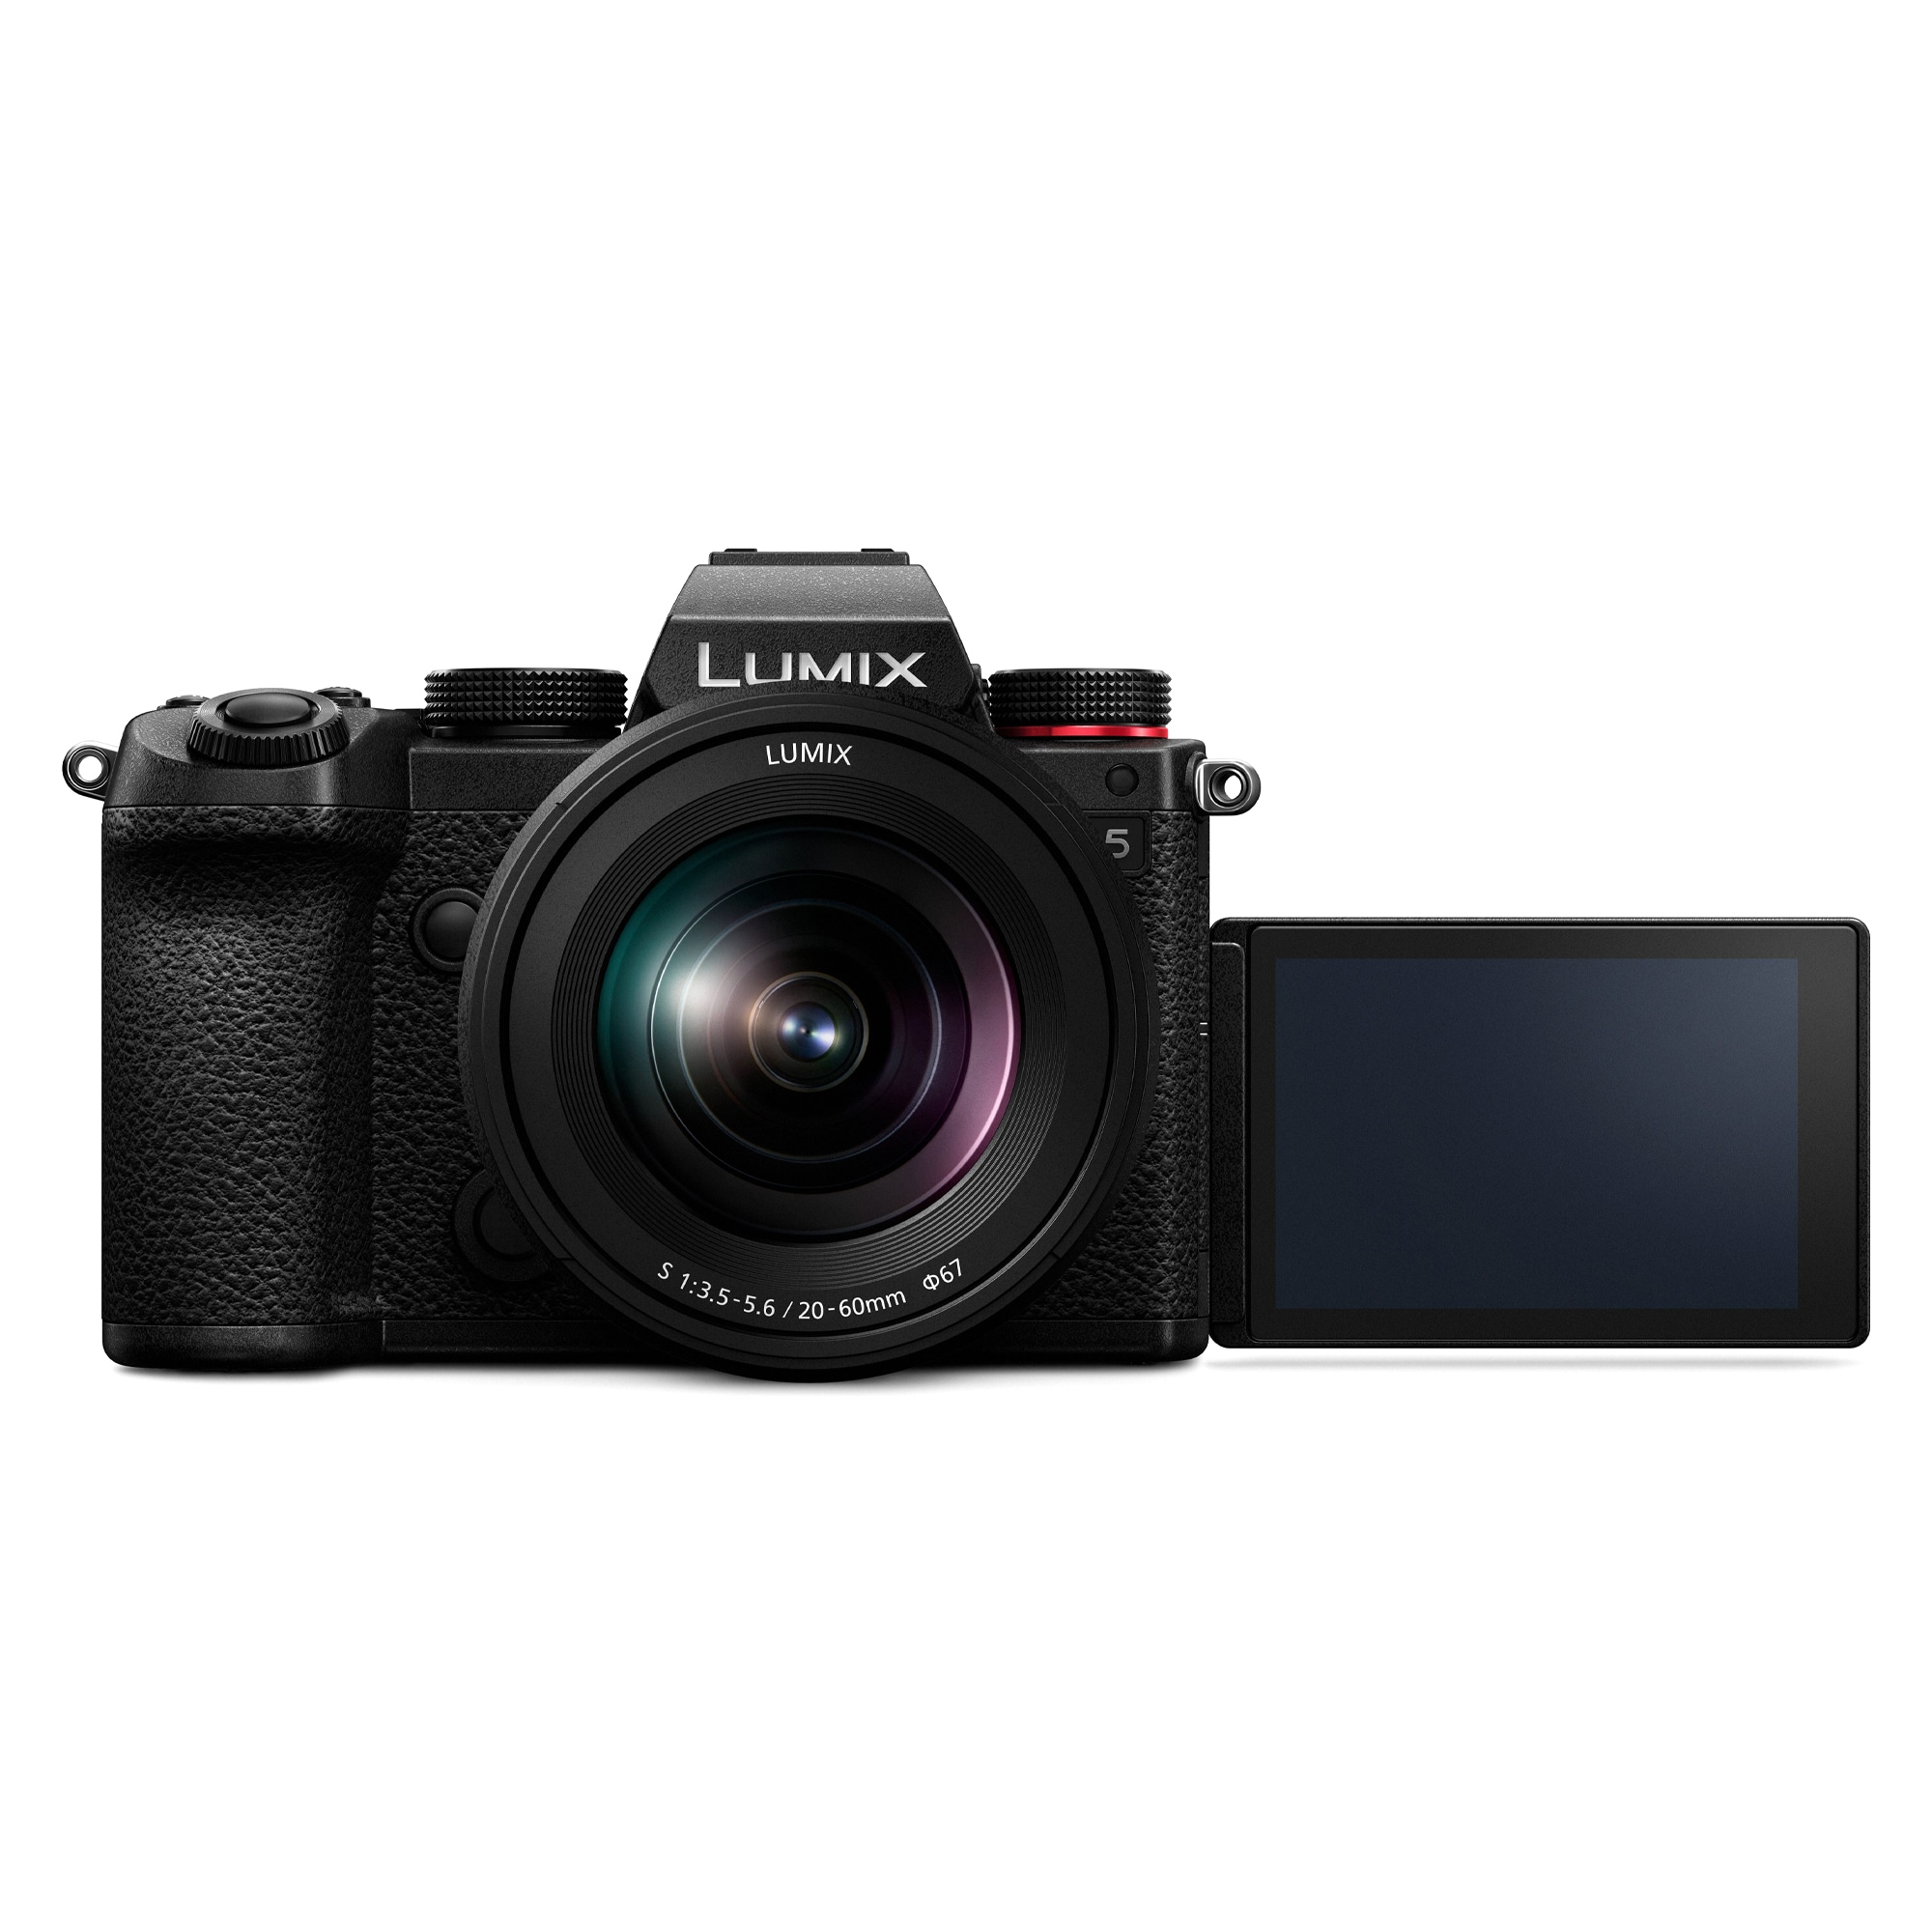 Panasonic Lumix S5 + 20-60mm f/3.5-5.6